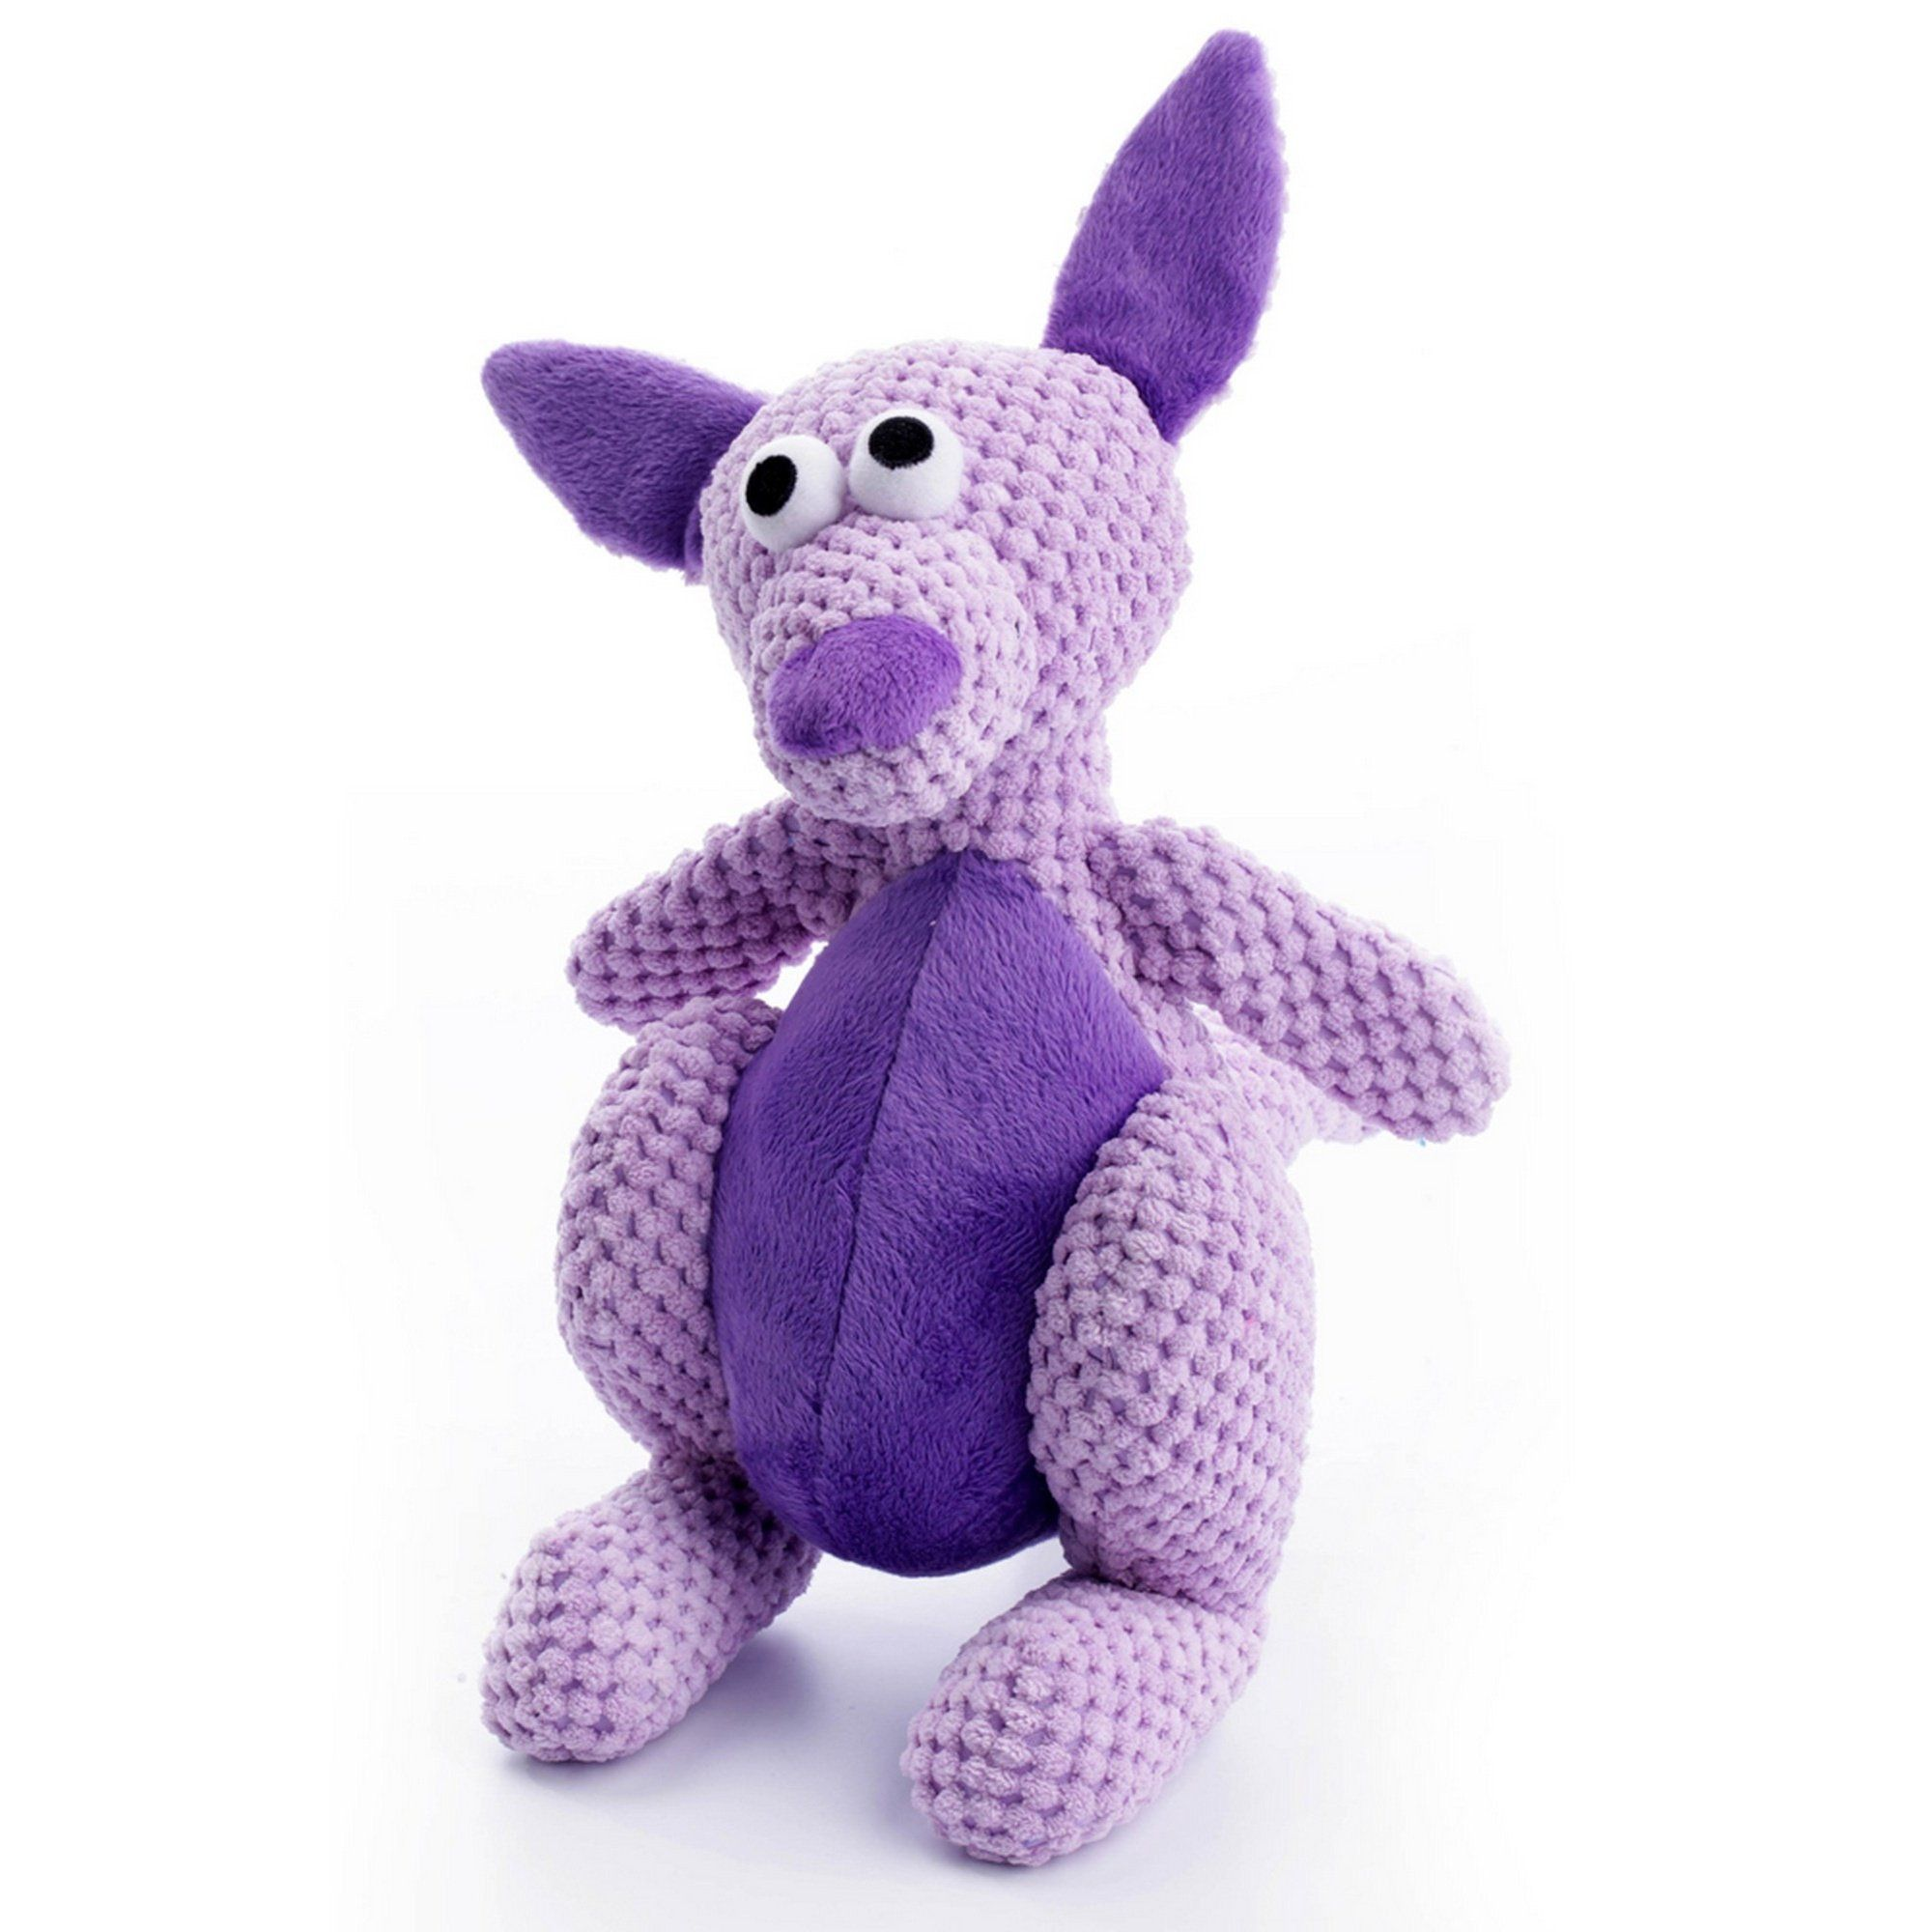 Go Dog Checkers Kangaroo Toy With Chew Guard Large Purple You